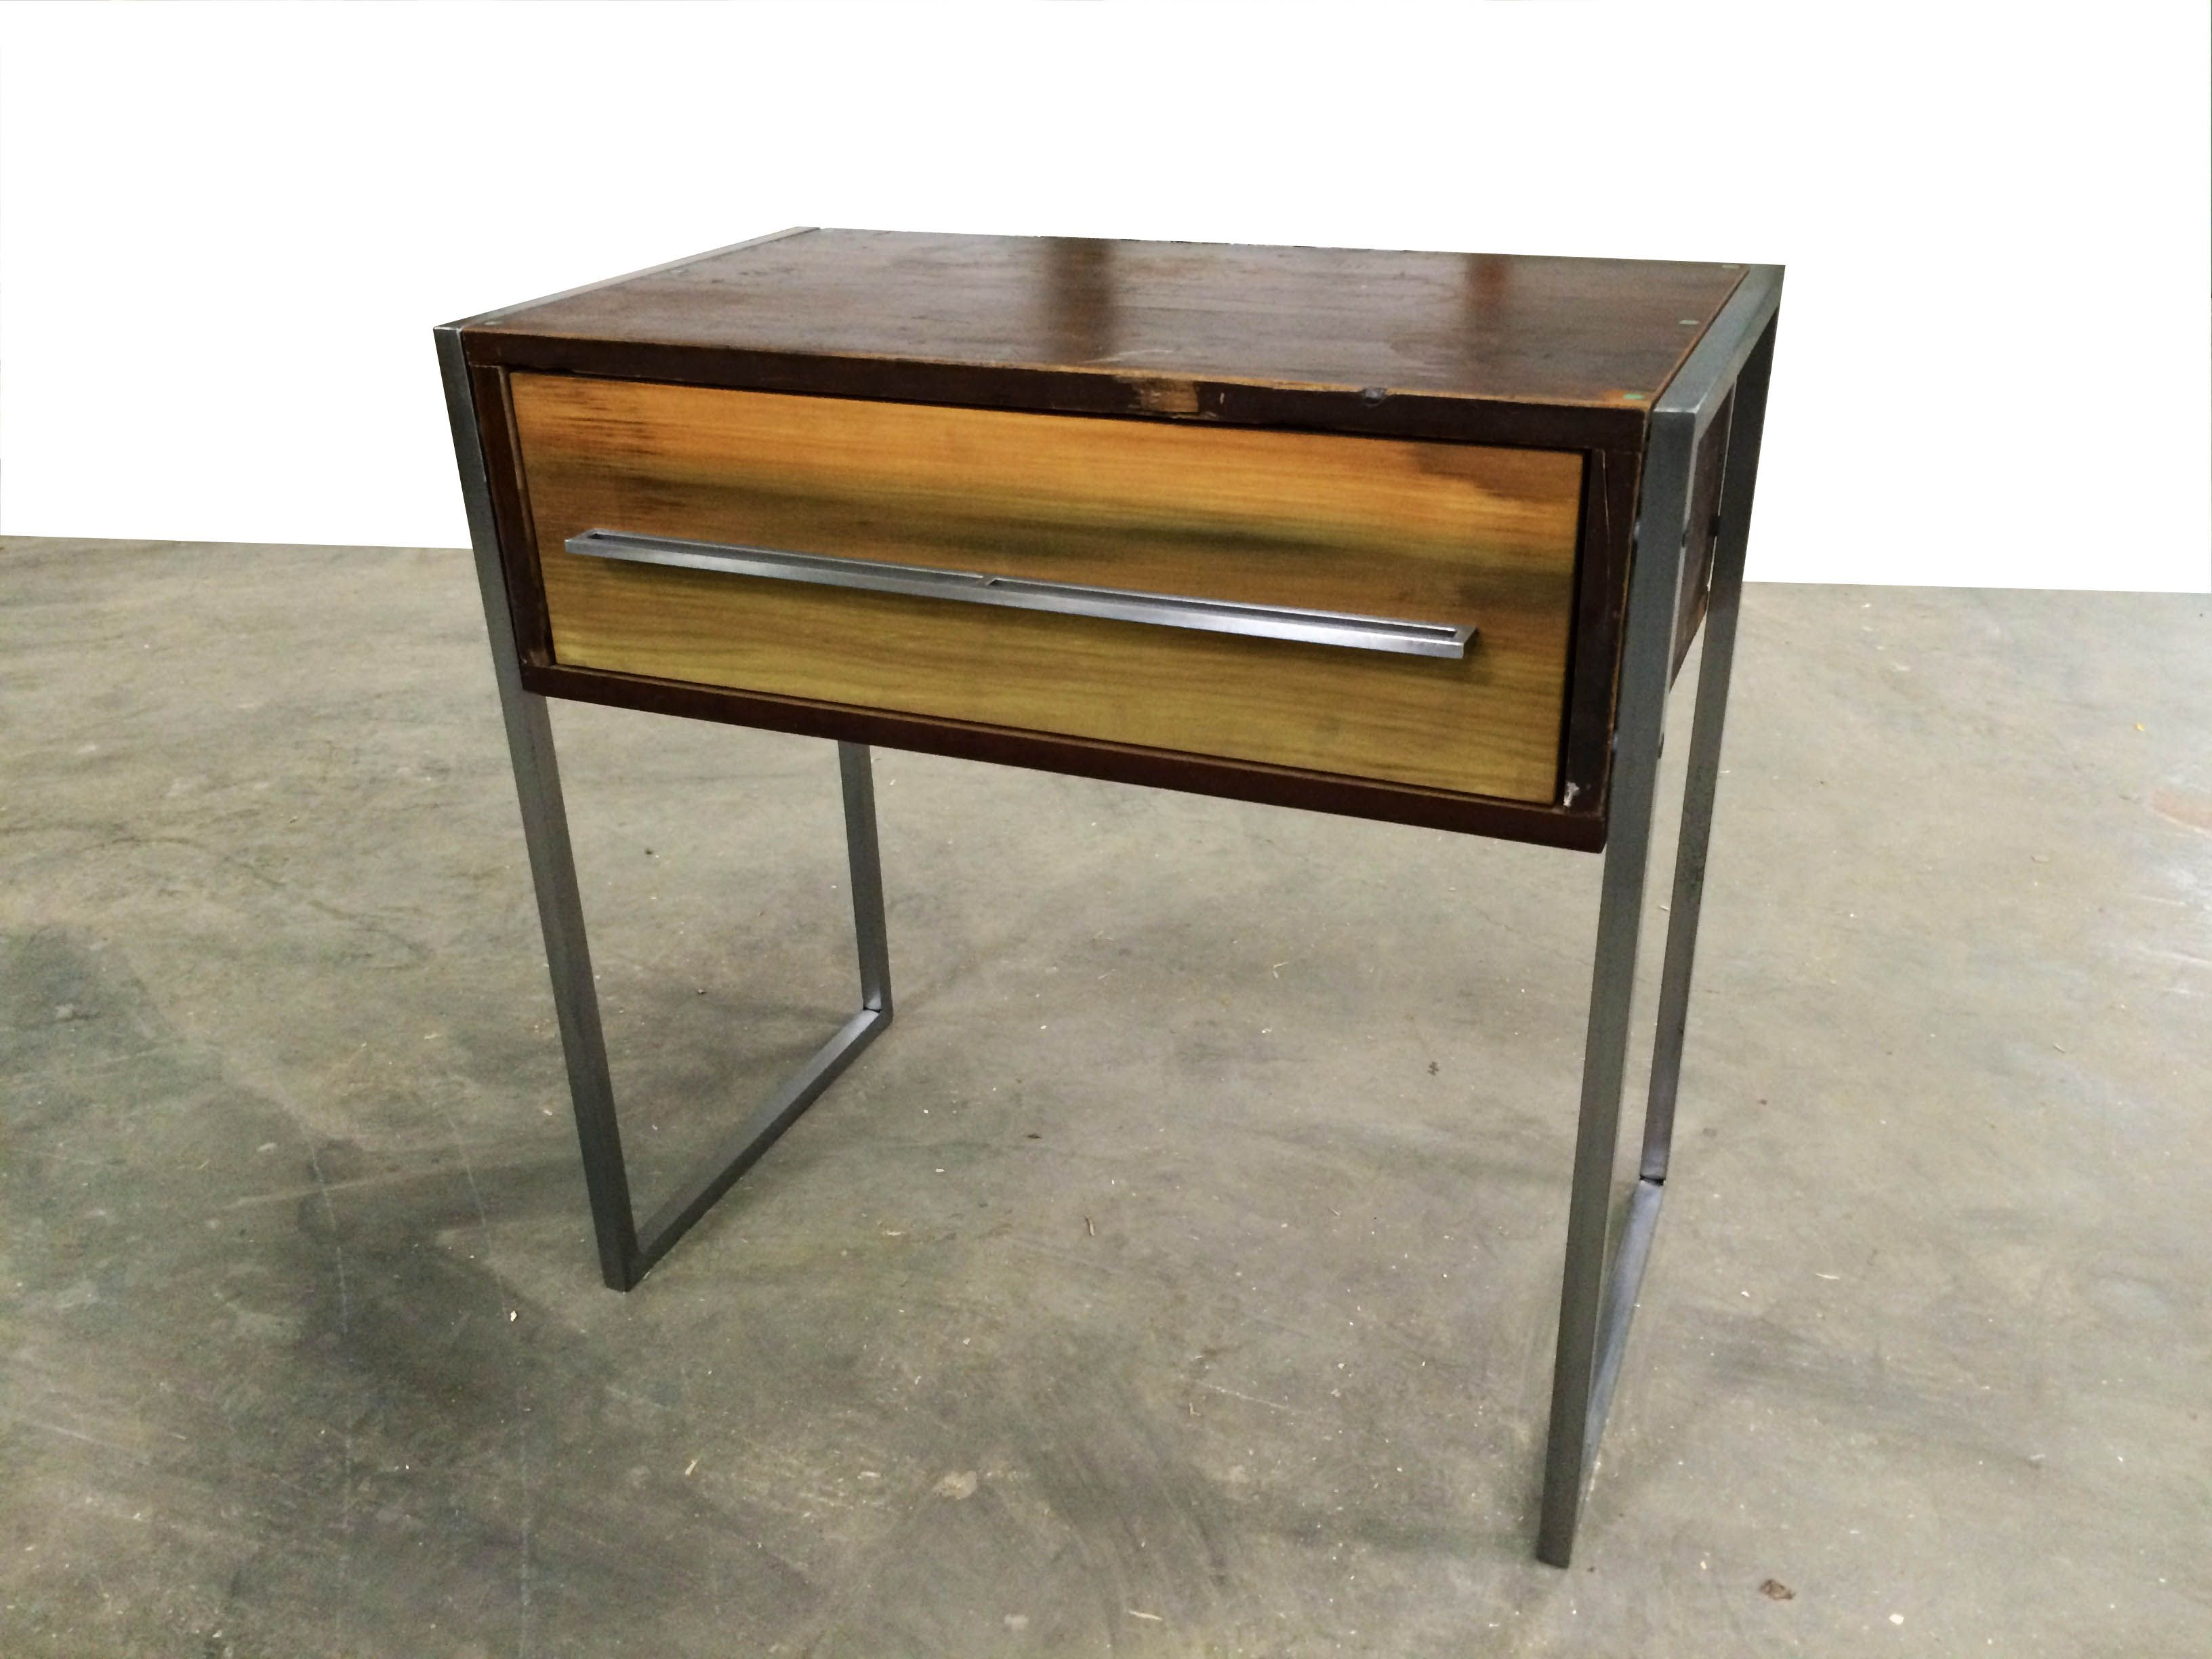 Handmade Reclaimed Wood And Steel Nightstand By Object A